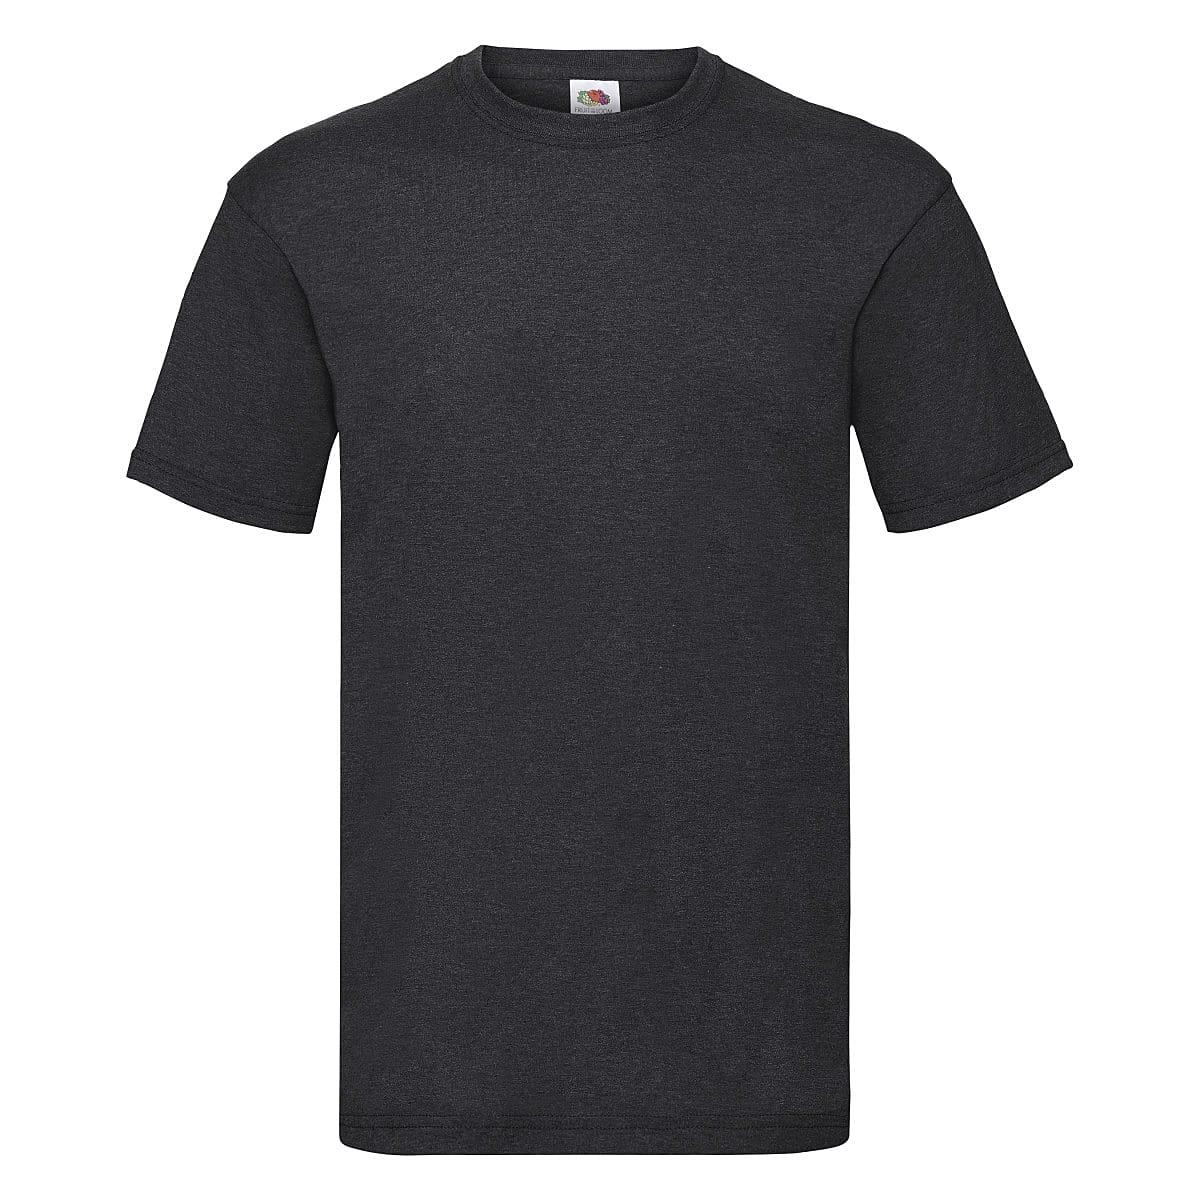 Fruit Of The Loom Valueweight T-Shirt in Dark Heather (Product Code: 61036)